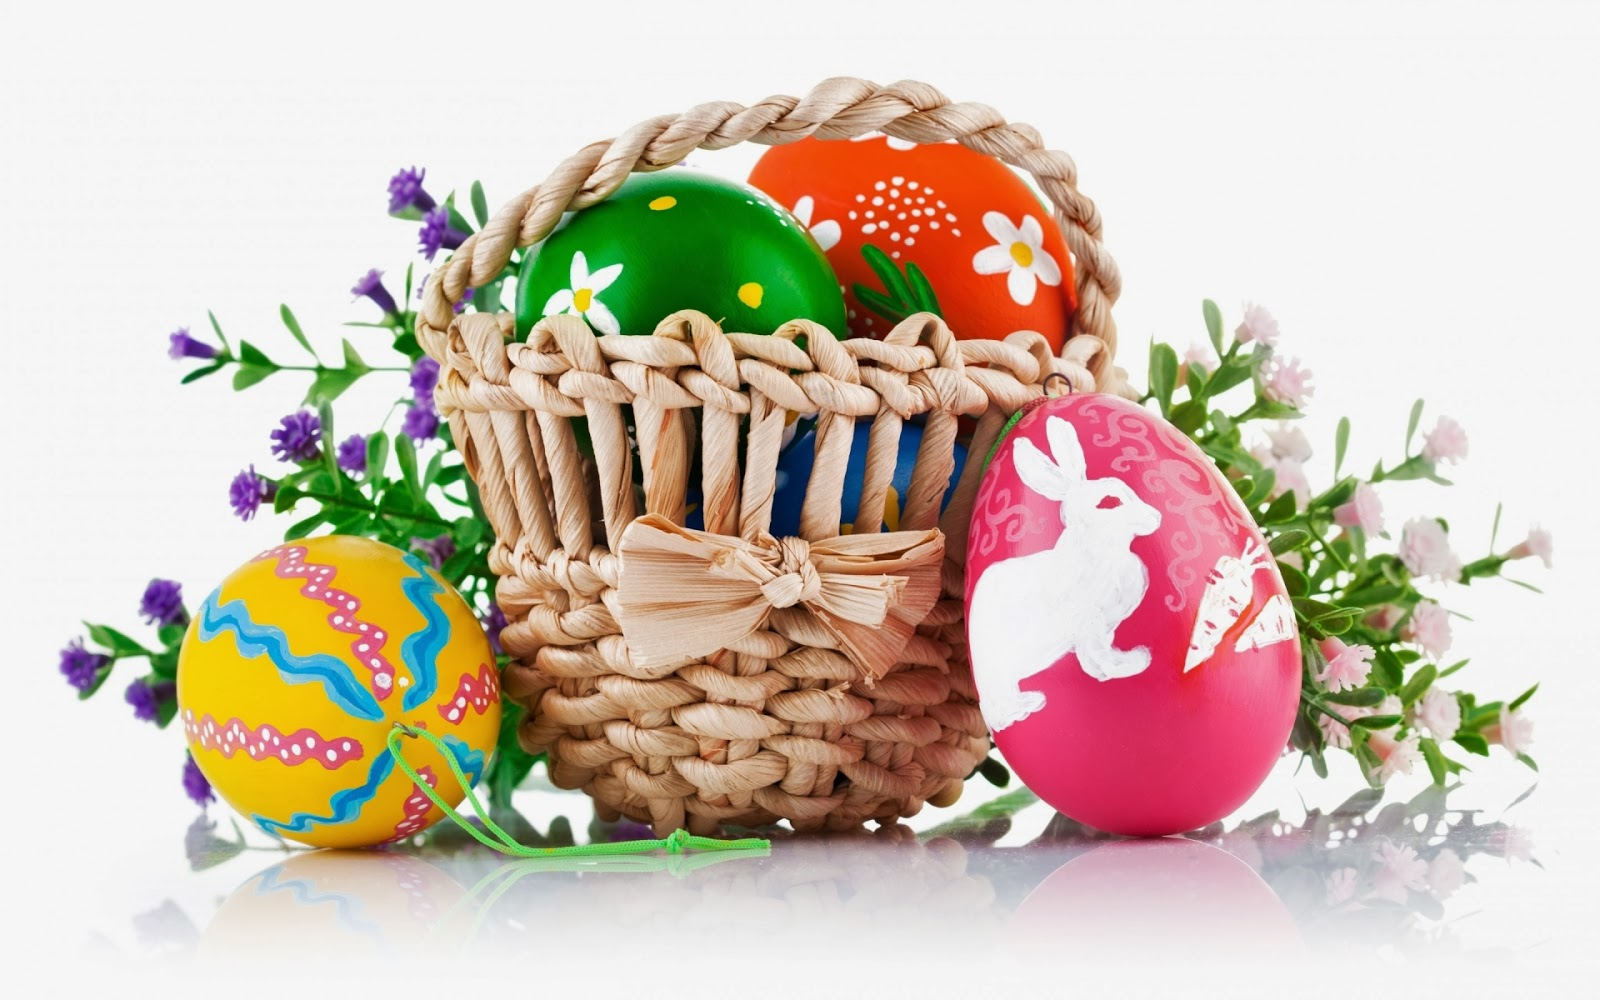 Little Easter Basket And Decorated Eggs